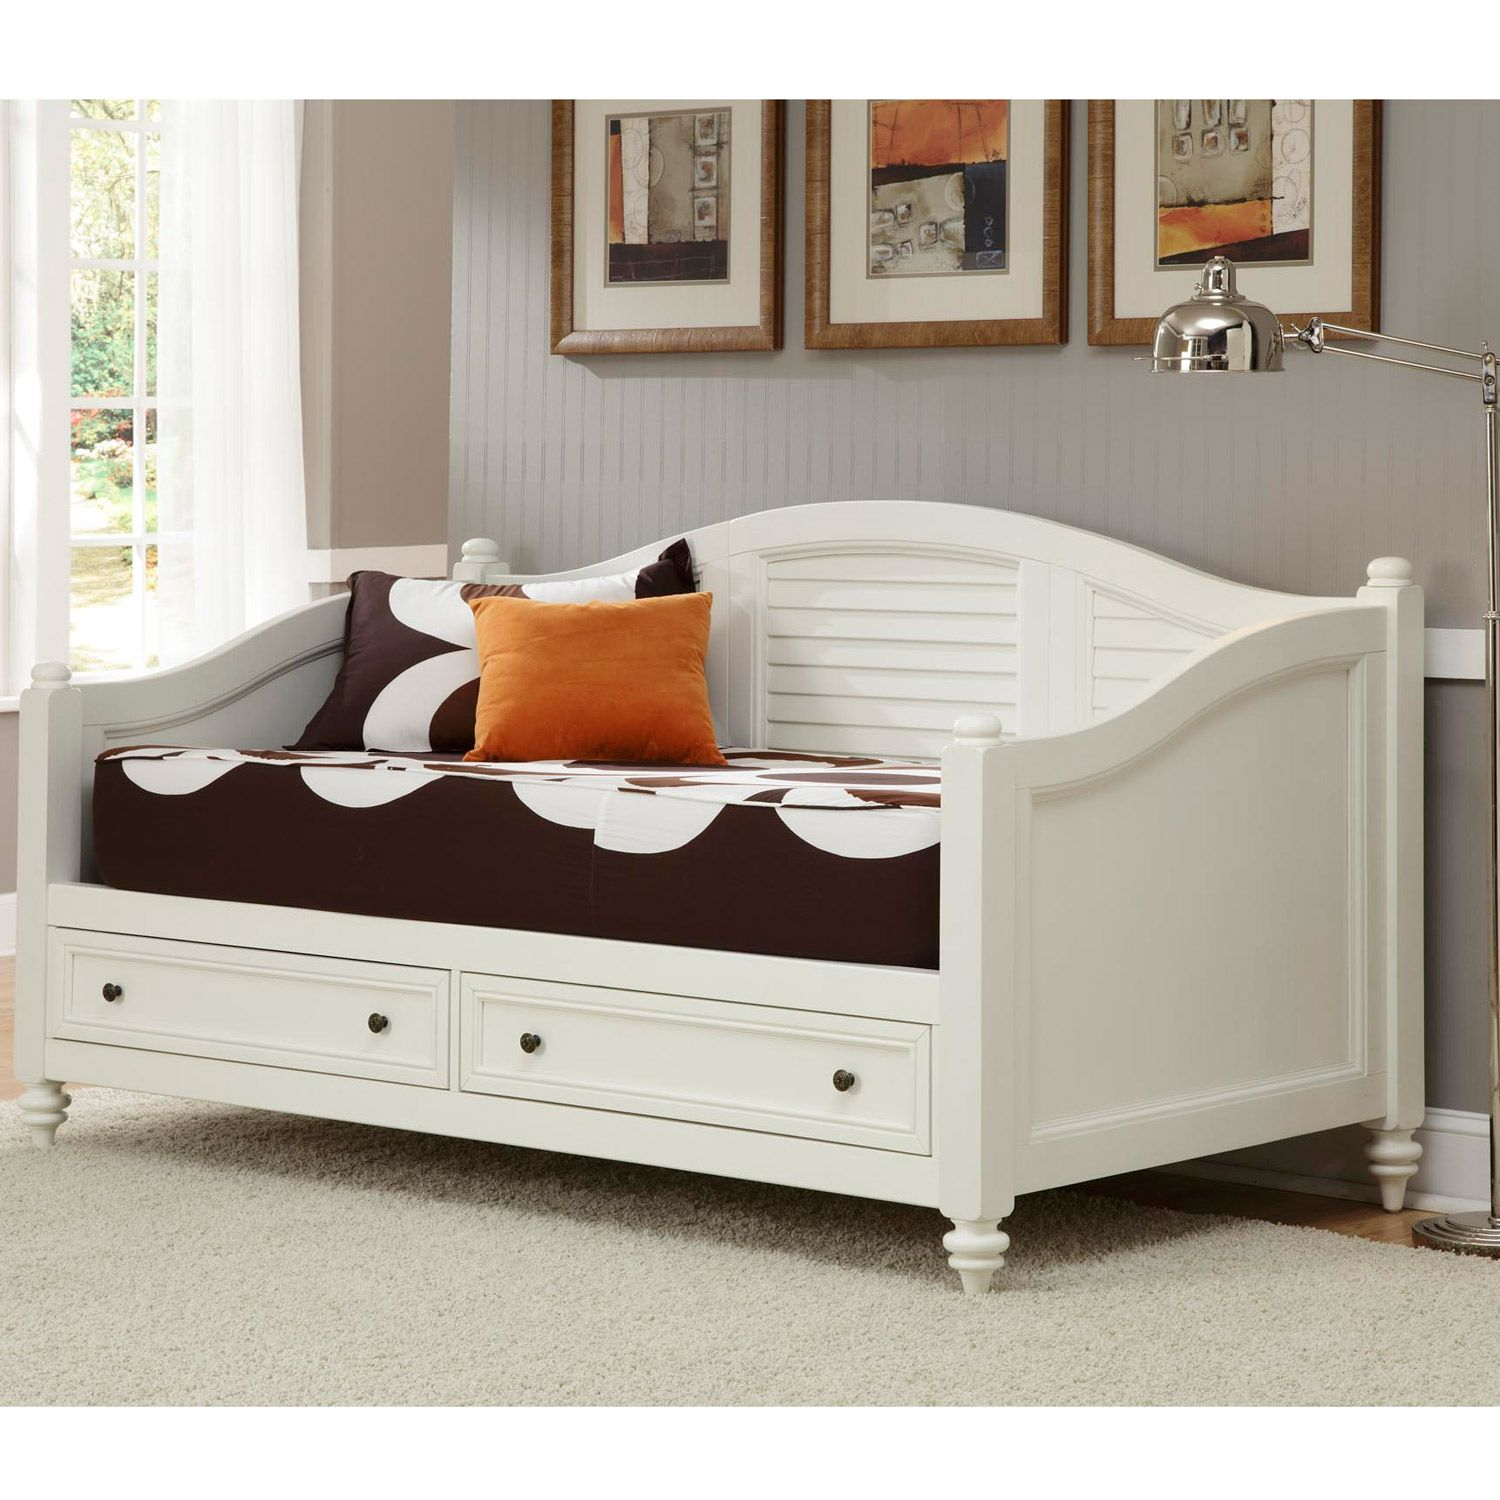 Amazing Twin Daybed Full Size With Drawer Storage Underneath